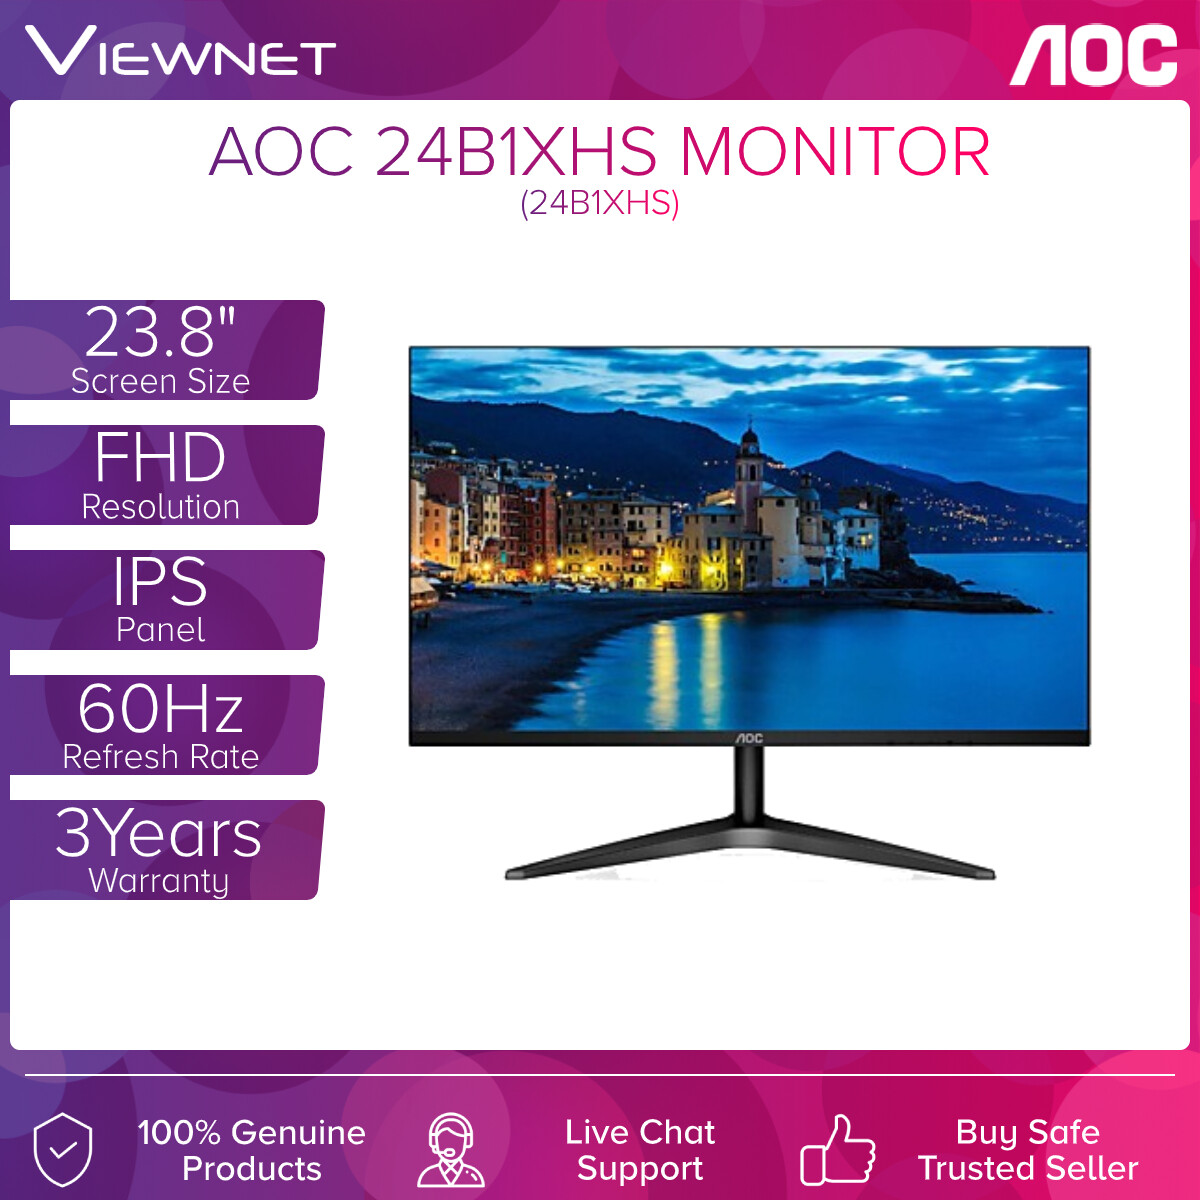 AOC 24B1XHS 23.8 IPS FRAMELESS FHD LED MONITOR (7MS GTG/60HZ/VGA + HDMI)